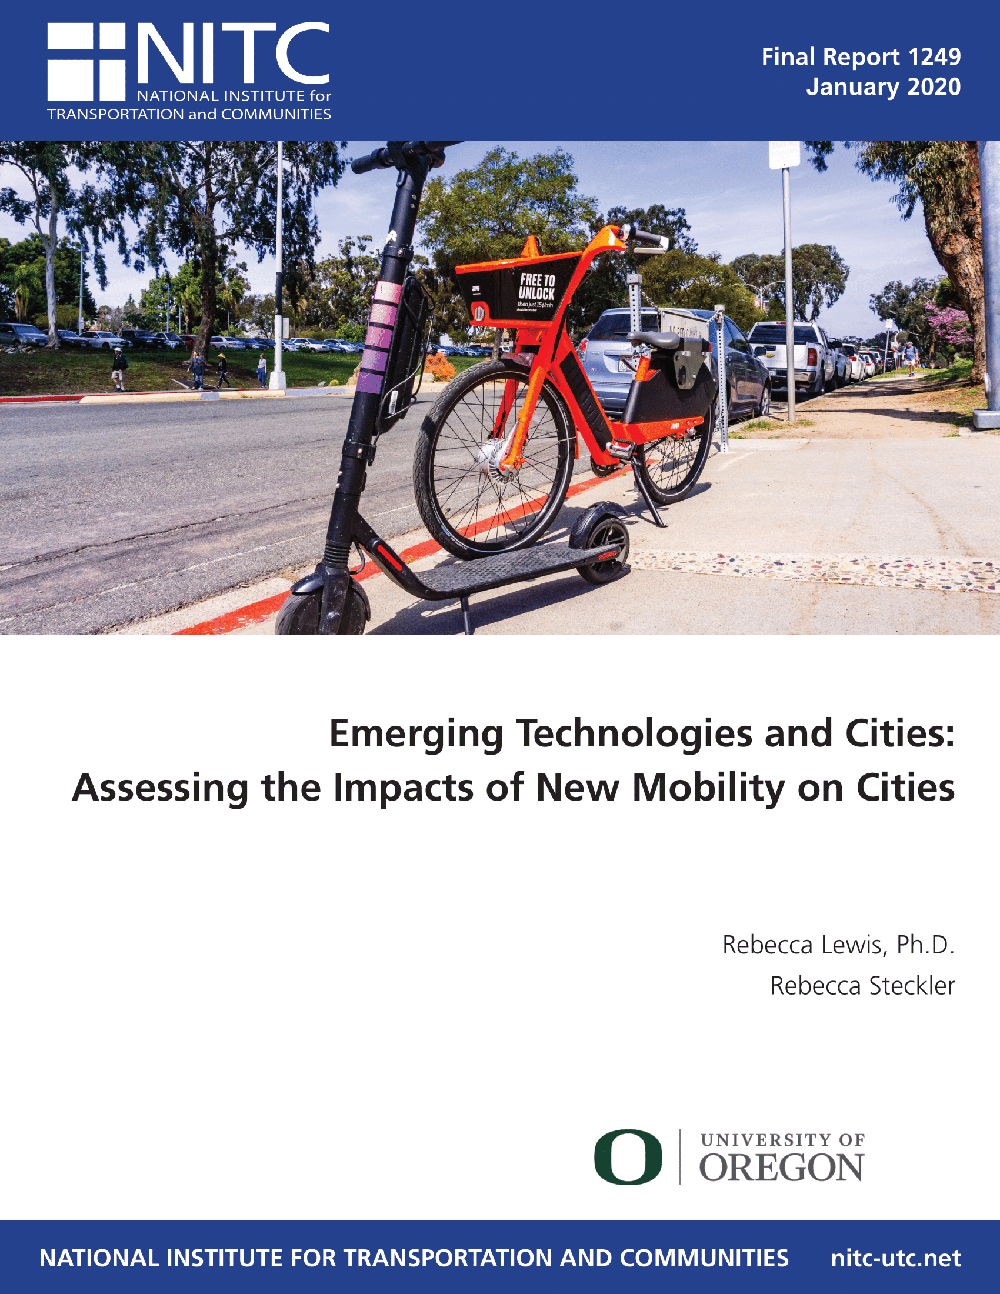 Emerging Technologies and Cities: Assessing the Impacts of New Mobility on Cities